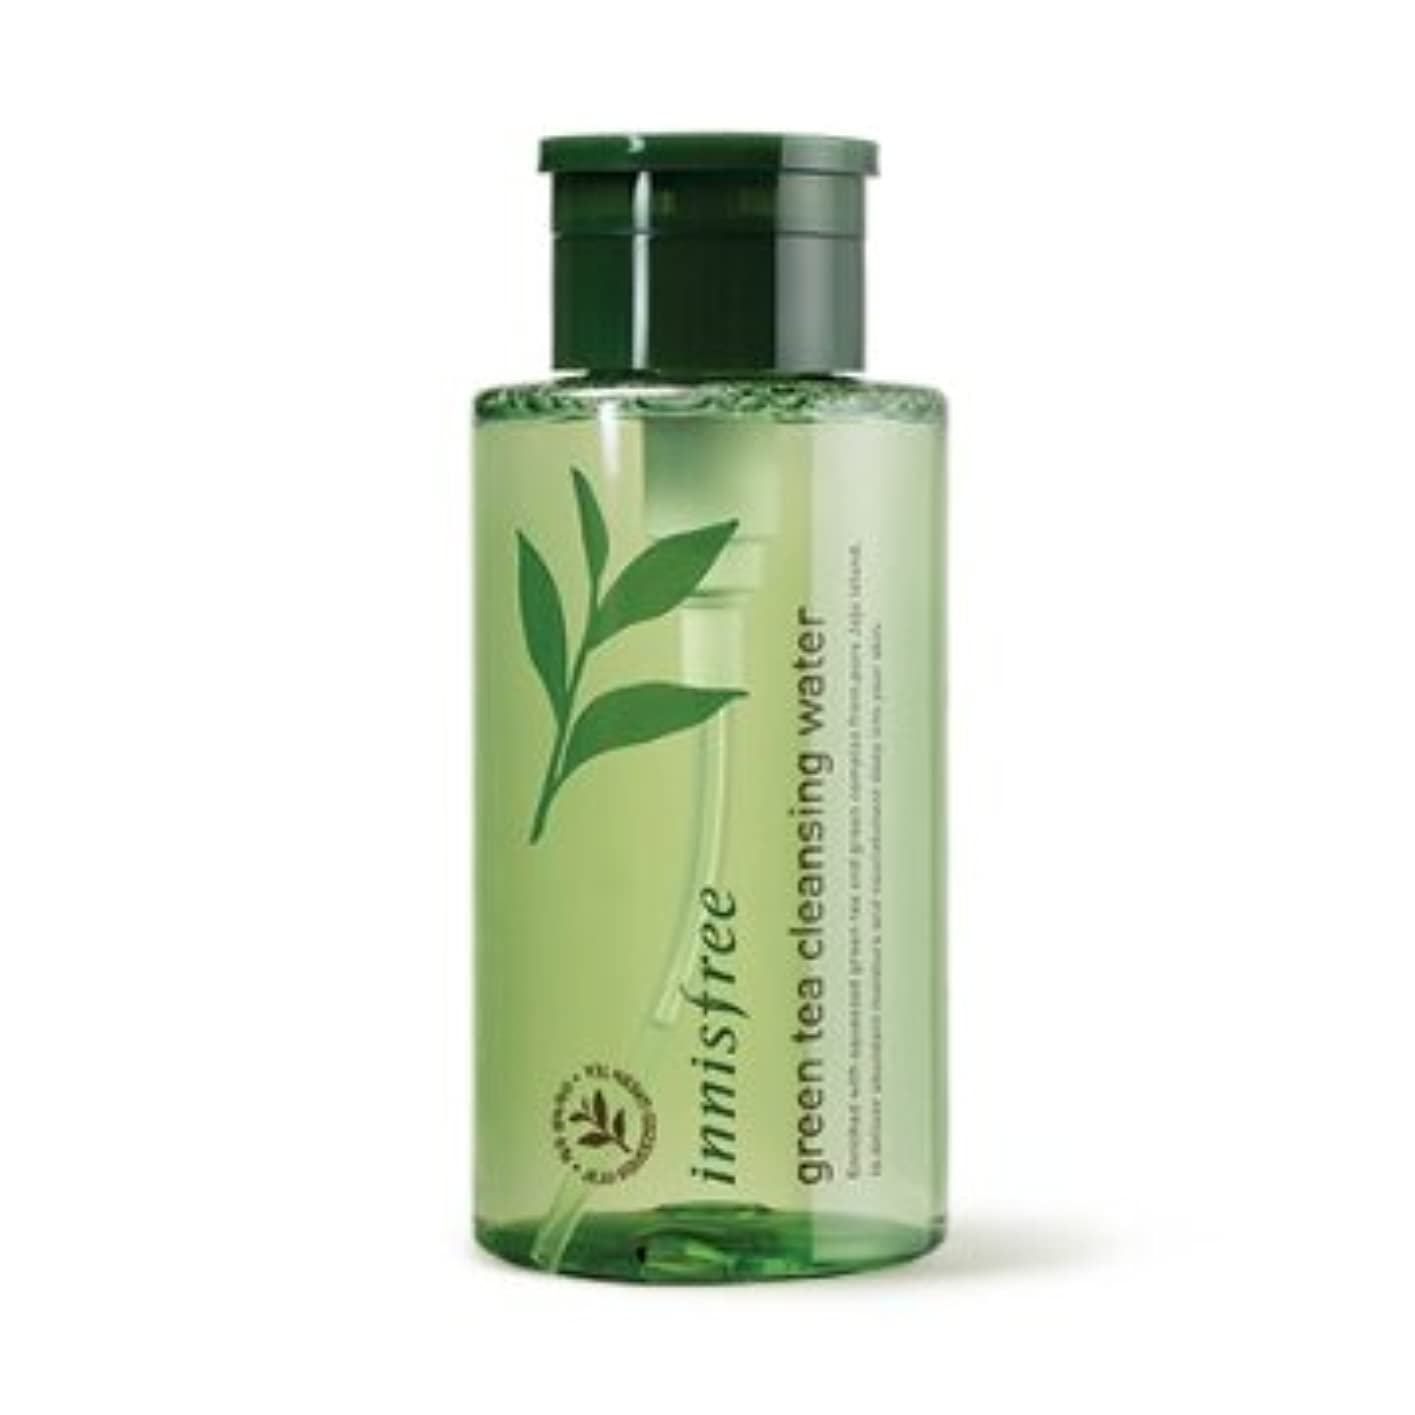 不純クリスマス嵐の【イニスフリー】Innisfree green tea cleansing water - 300ml(300ml (韓国直送品) (SHOPPINGINSTAGRAM)